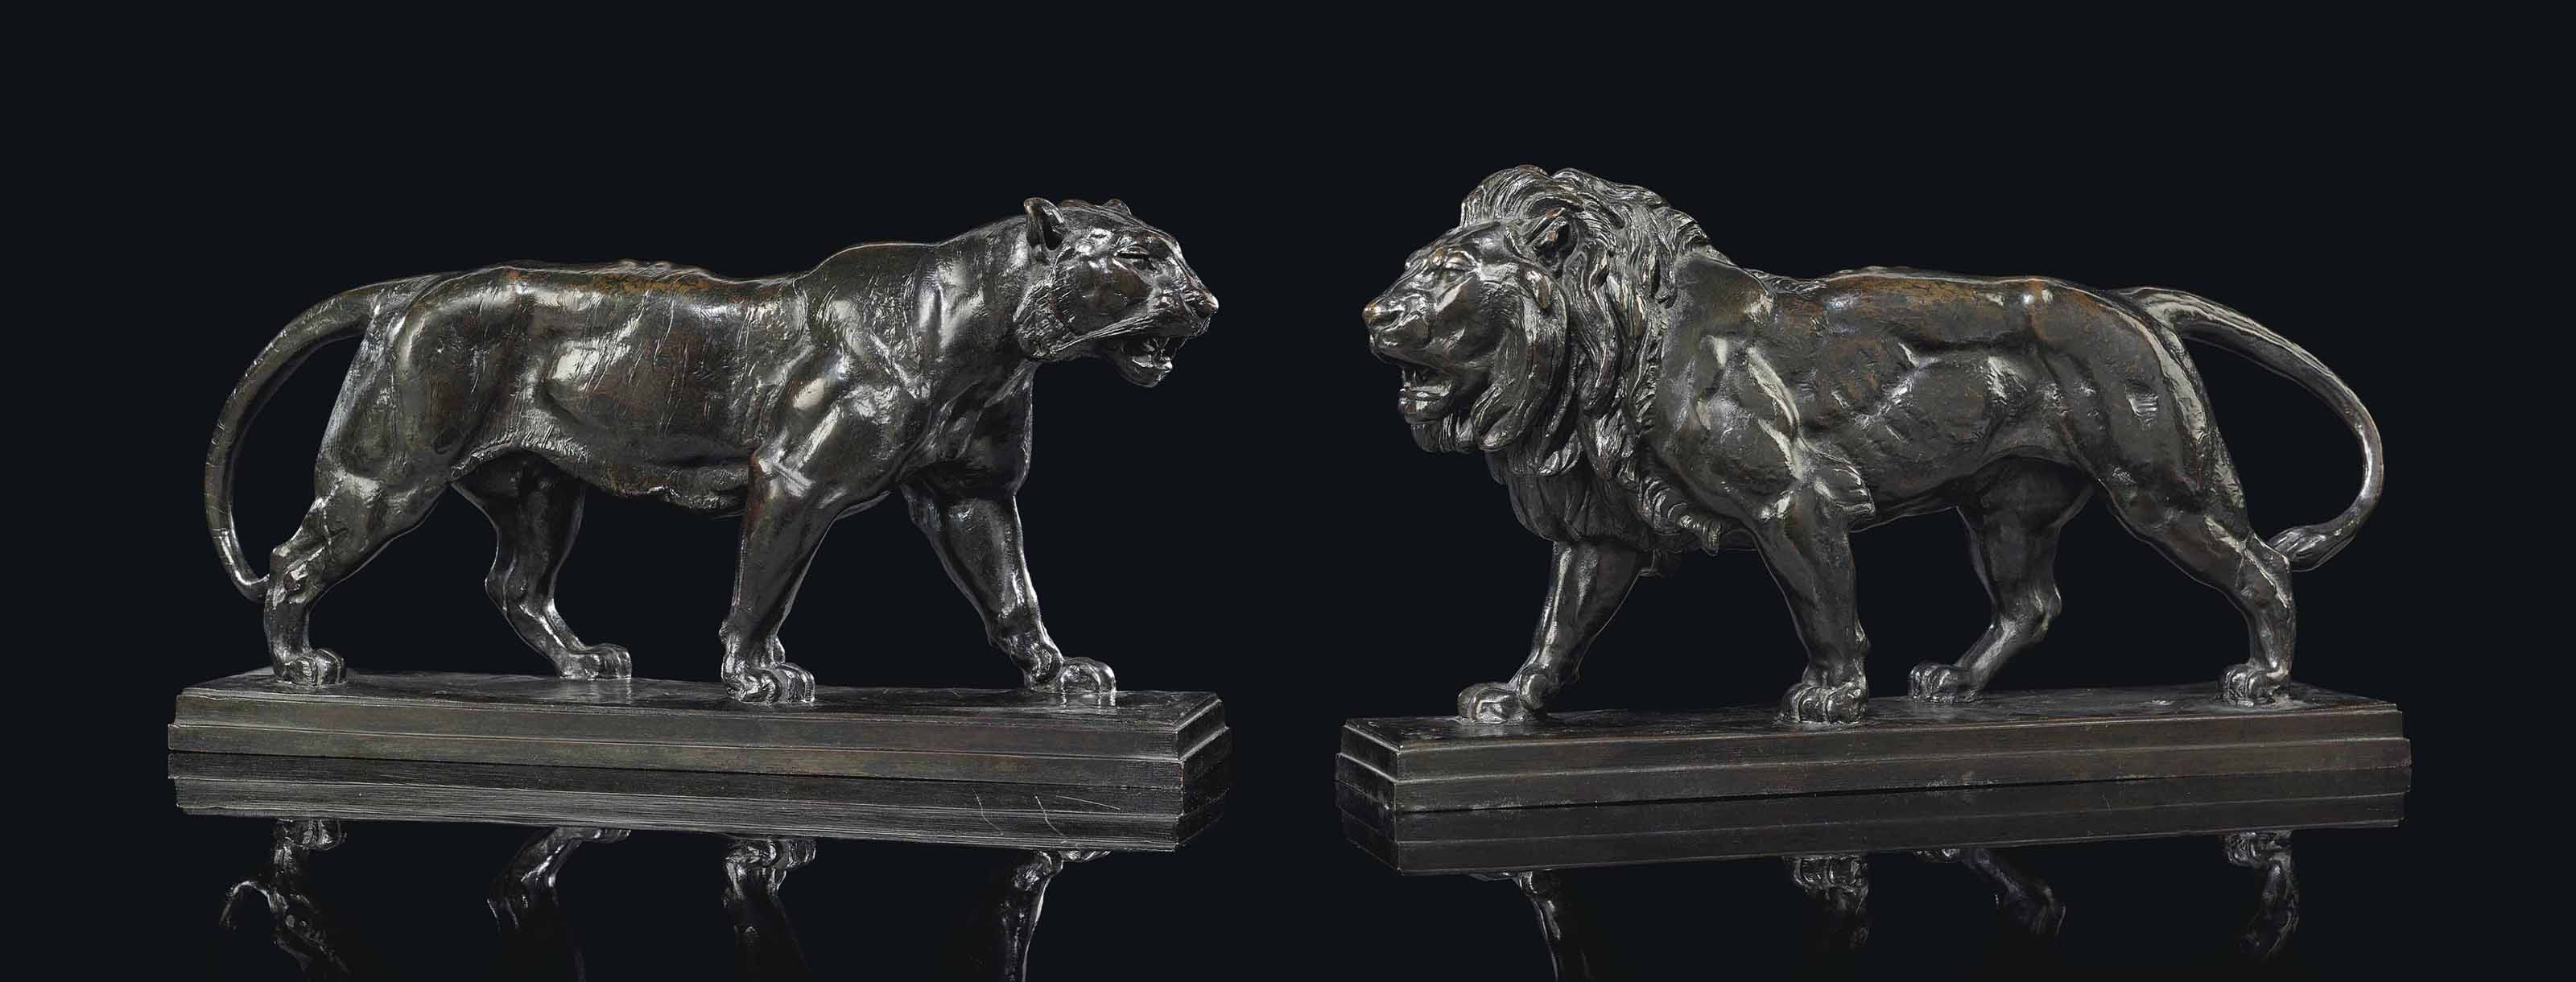 A PAIR OF BRONZE STUDIES ENTITLED 'TIGRE QUI MARCHE' AND 'LION QUI MARCHE'